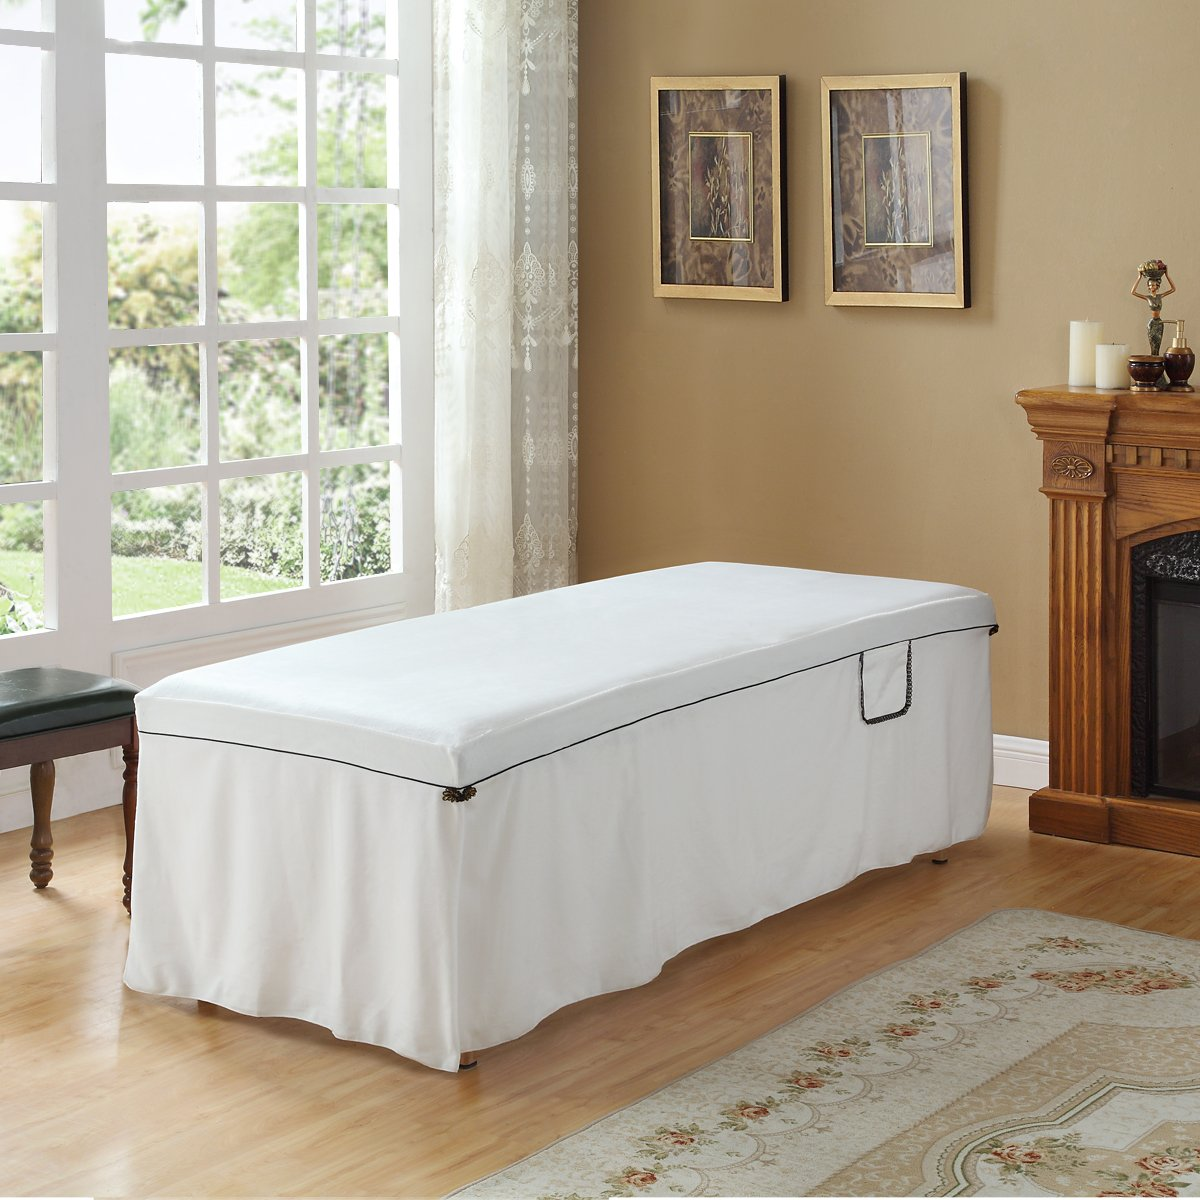 Massage Mattress Bedspread/Bed Cover/Comfortable Sheet(White) Lessismore